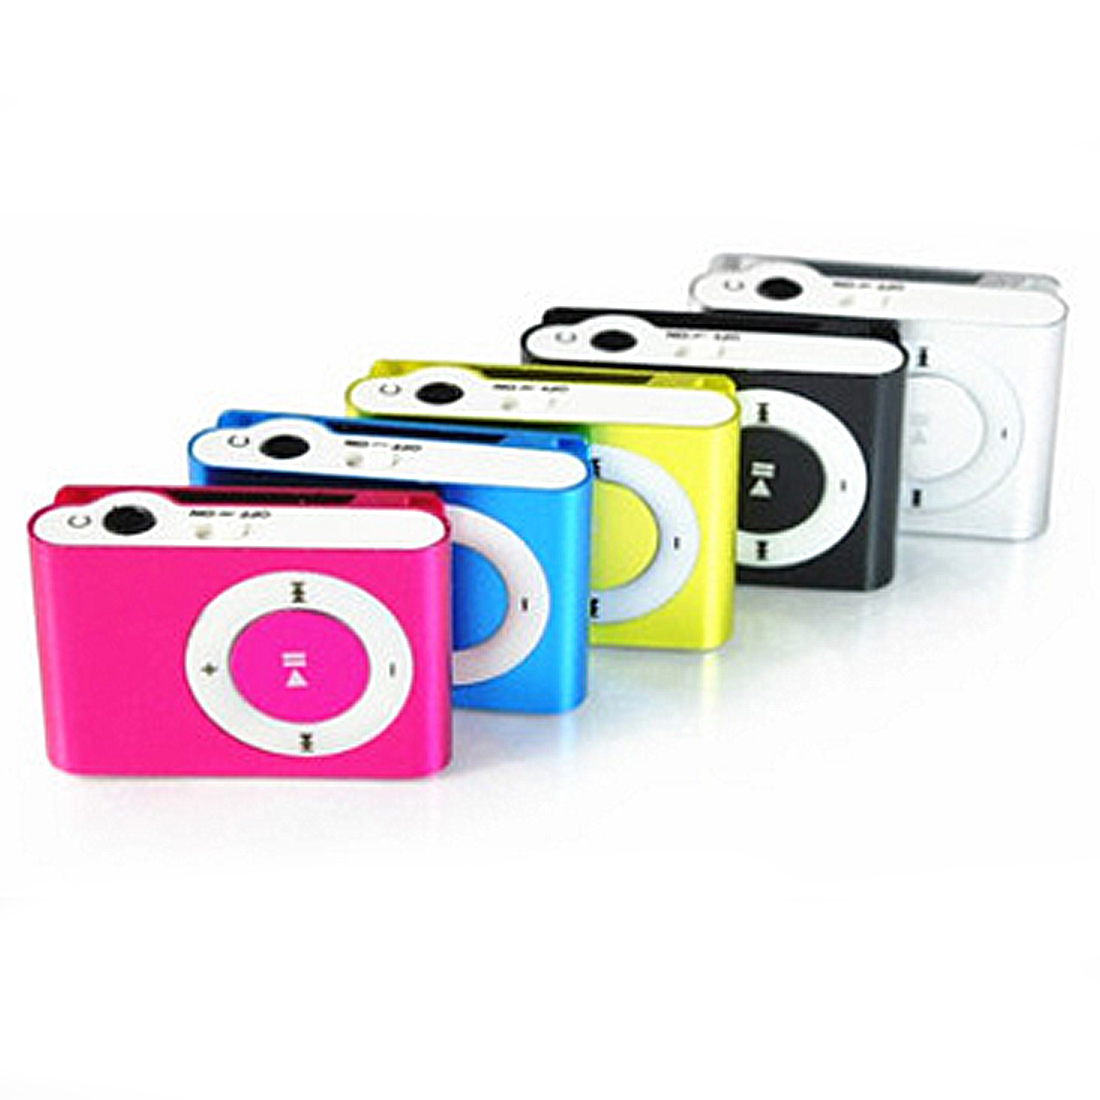 NEW Hot Sale 8 Candy Colors Mirror Portable MP3 Player Mini Clip MP3 Player Waterproof Sport Mp3 Music Walkman With TF Slot(China)